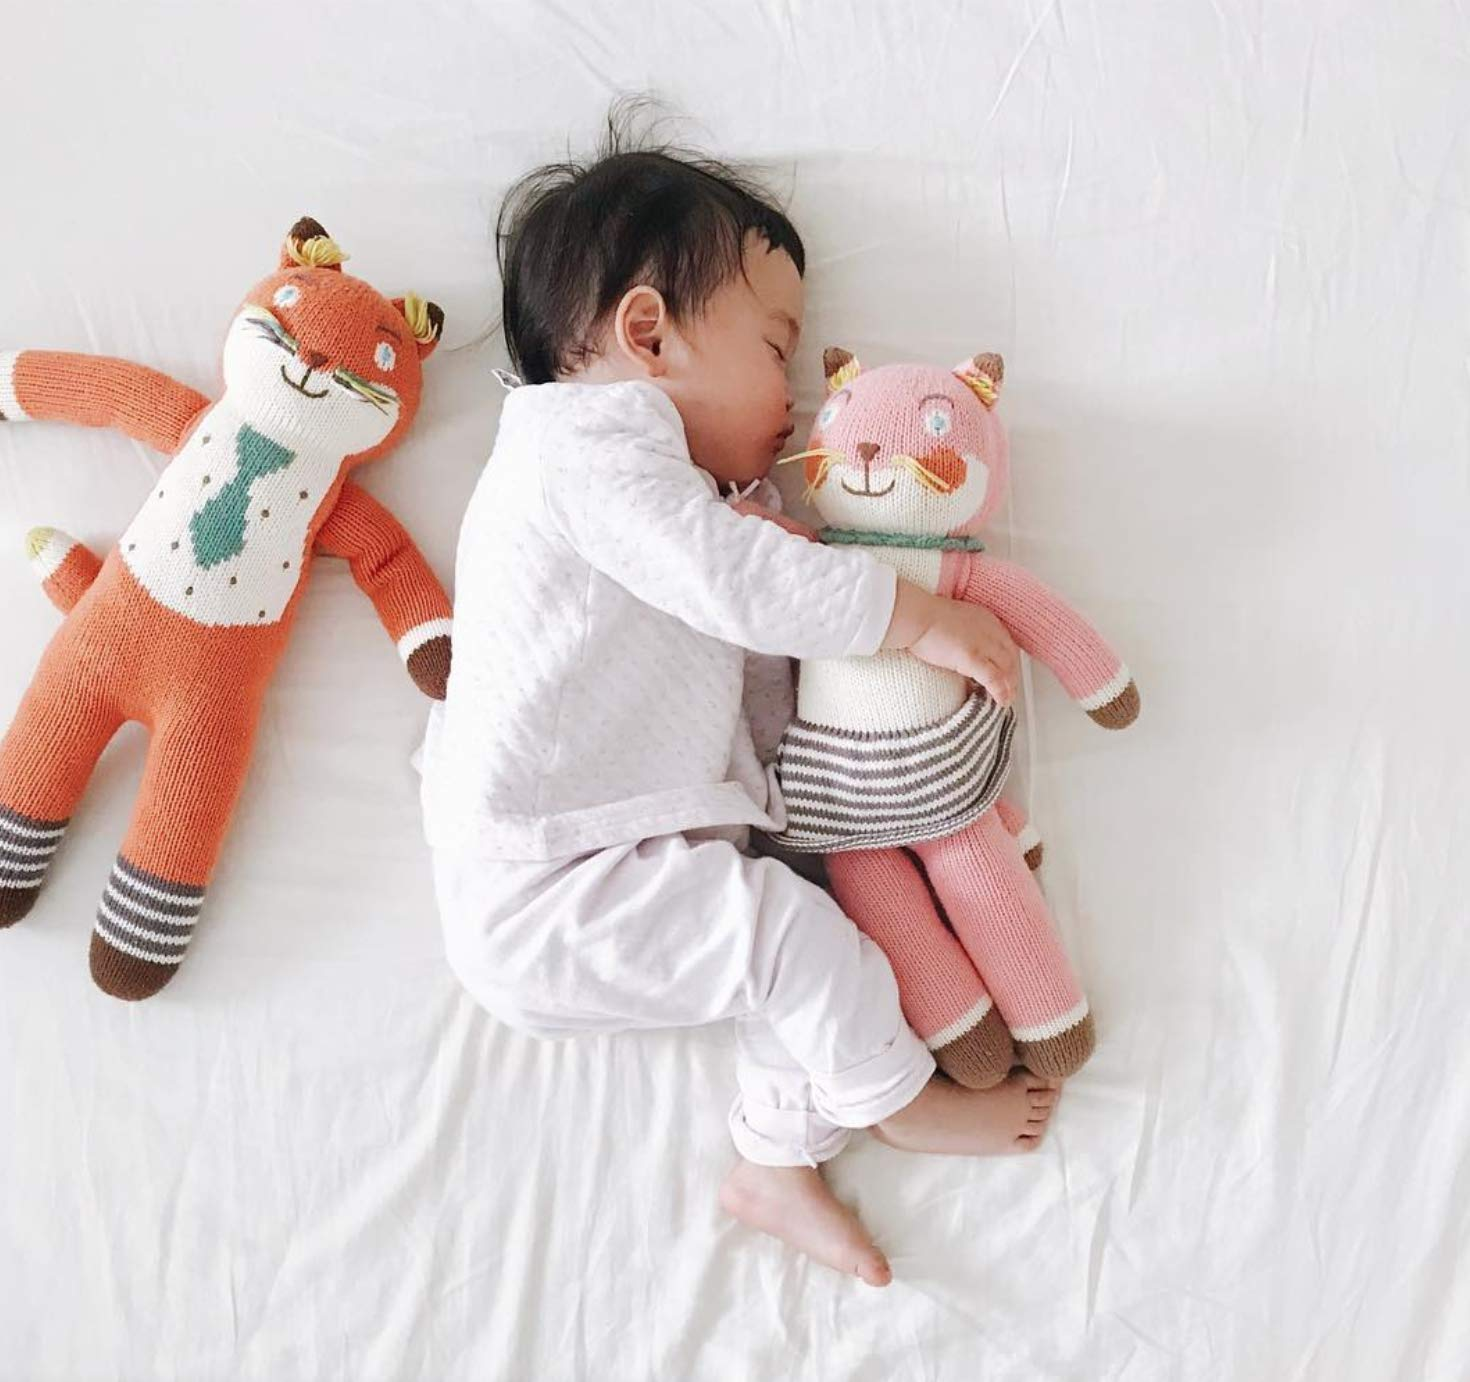 Blabla Suzette The Fox Mini Plush Doll - Knit Stuffed Animal for Kids. Cute, Cuddly & Soft Cotton Toy. Perfect, Forever Cherished. Eco-Friendly. Certified Safe & Non-Toxic. by Blabla